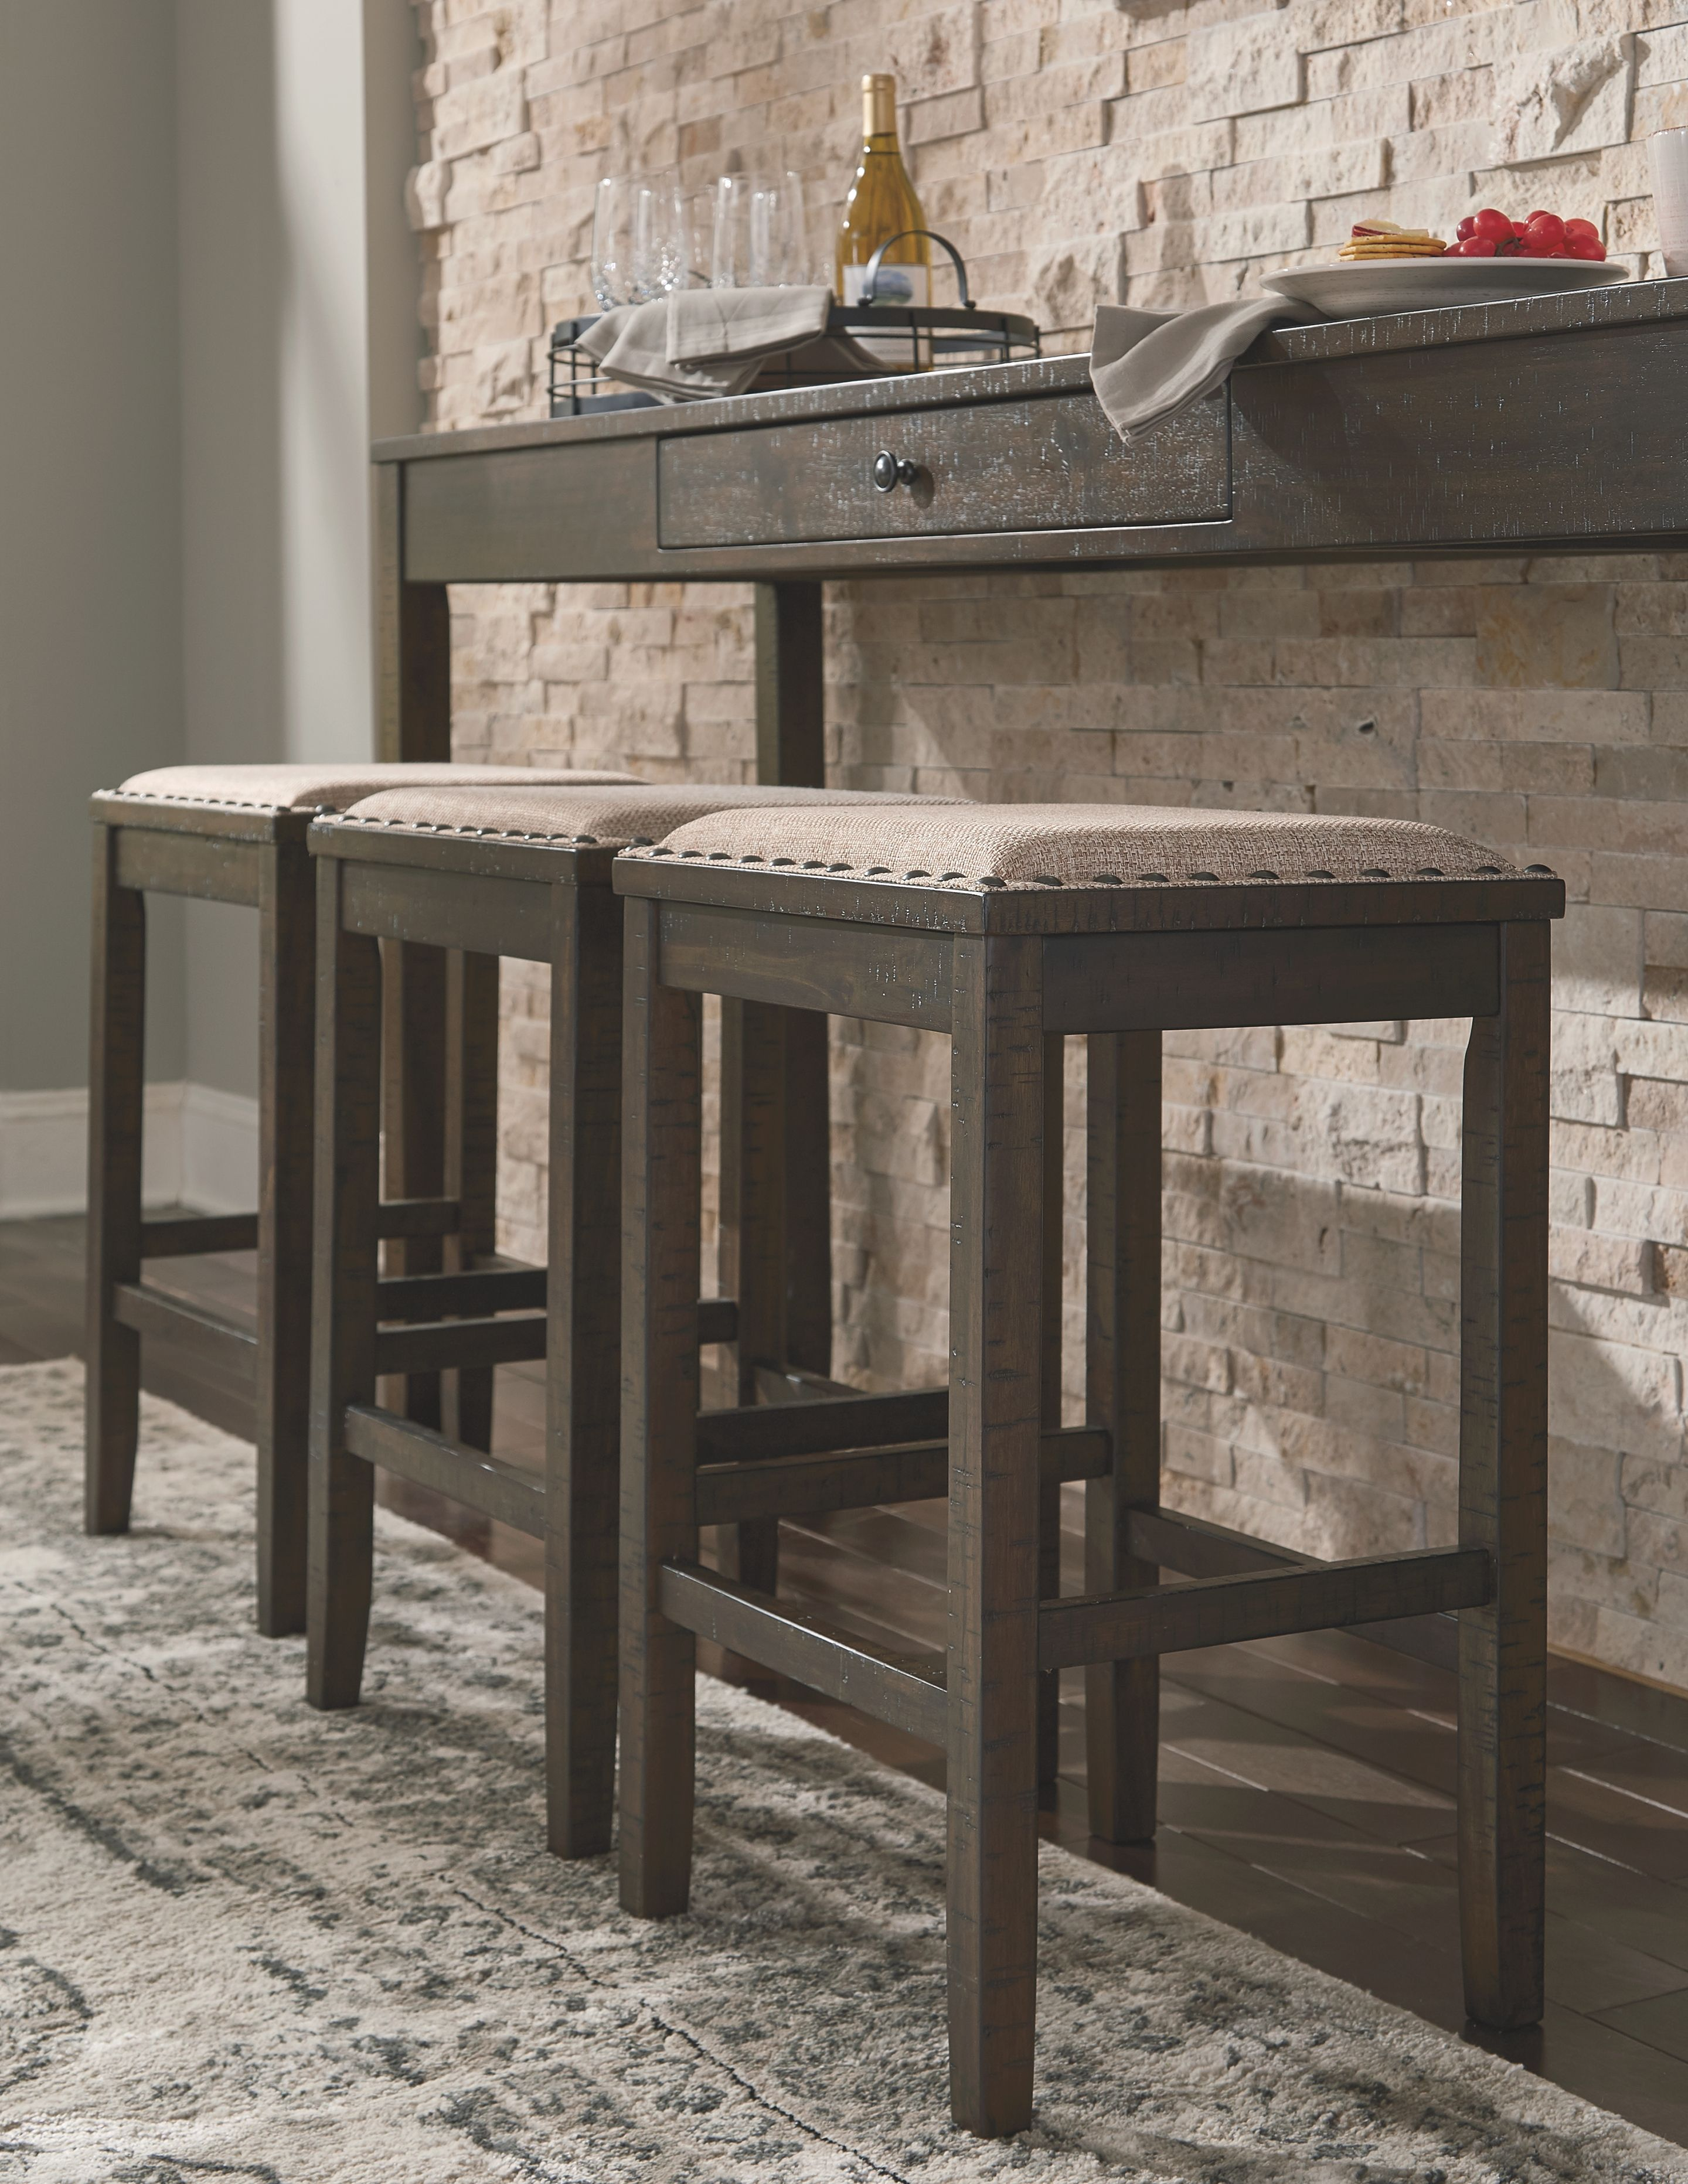 Miraculous Rokane Counter Height Dining Room Table And Bar Stools Set Beatyapartments Chair Design Images Beatyapartmentscom